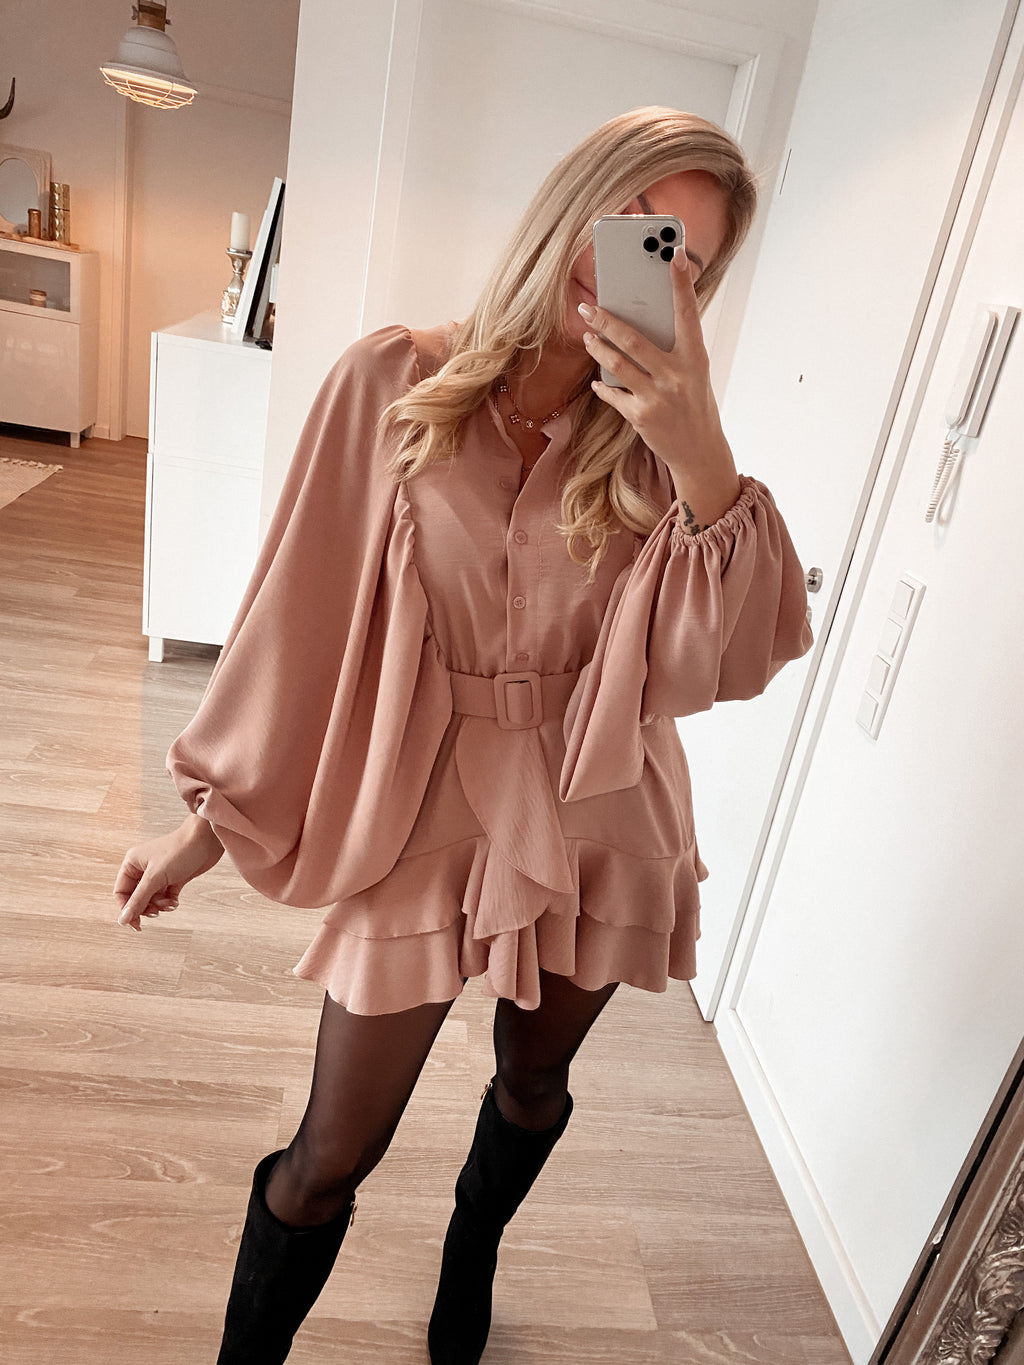 dress 'dream in rosé'